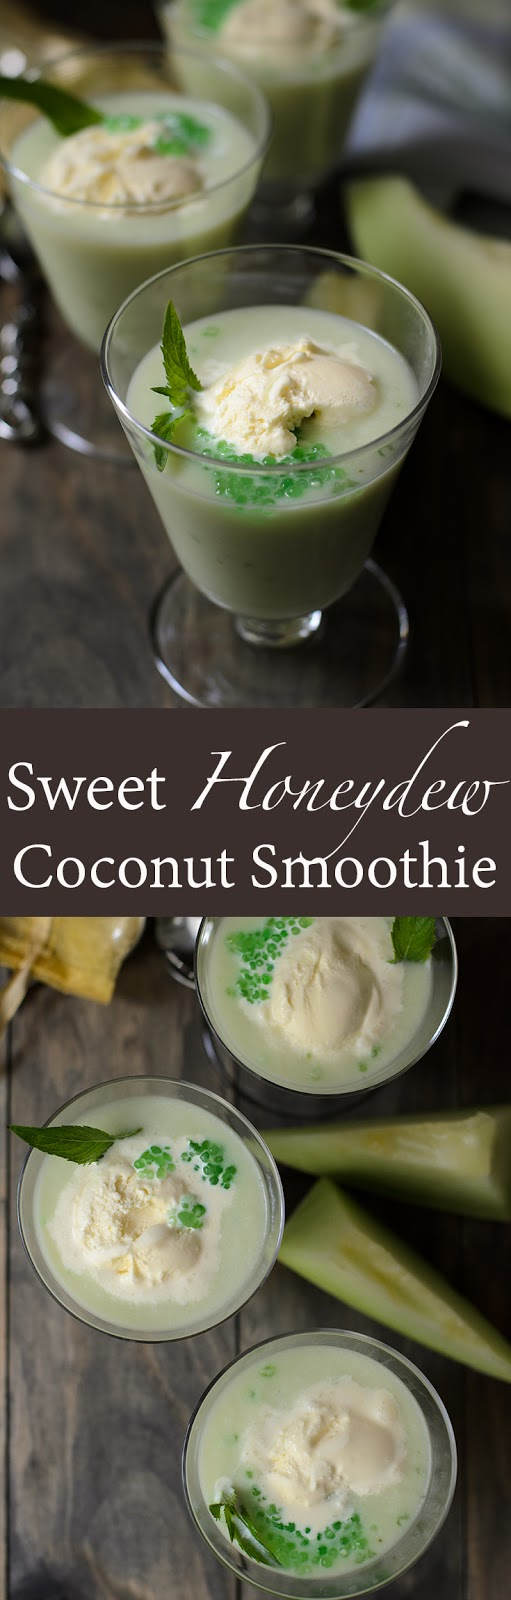 Honeydew blend with coconut milk